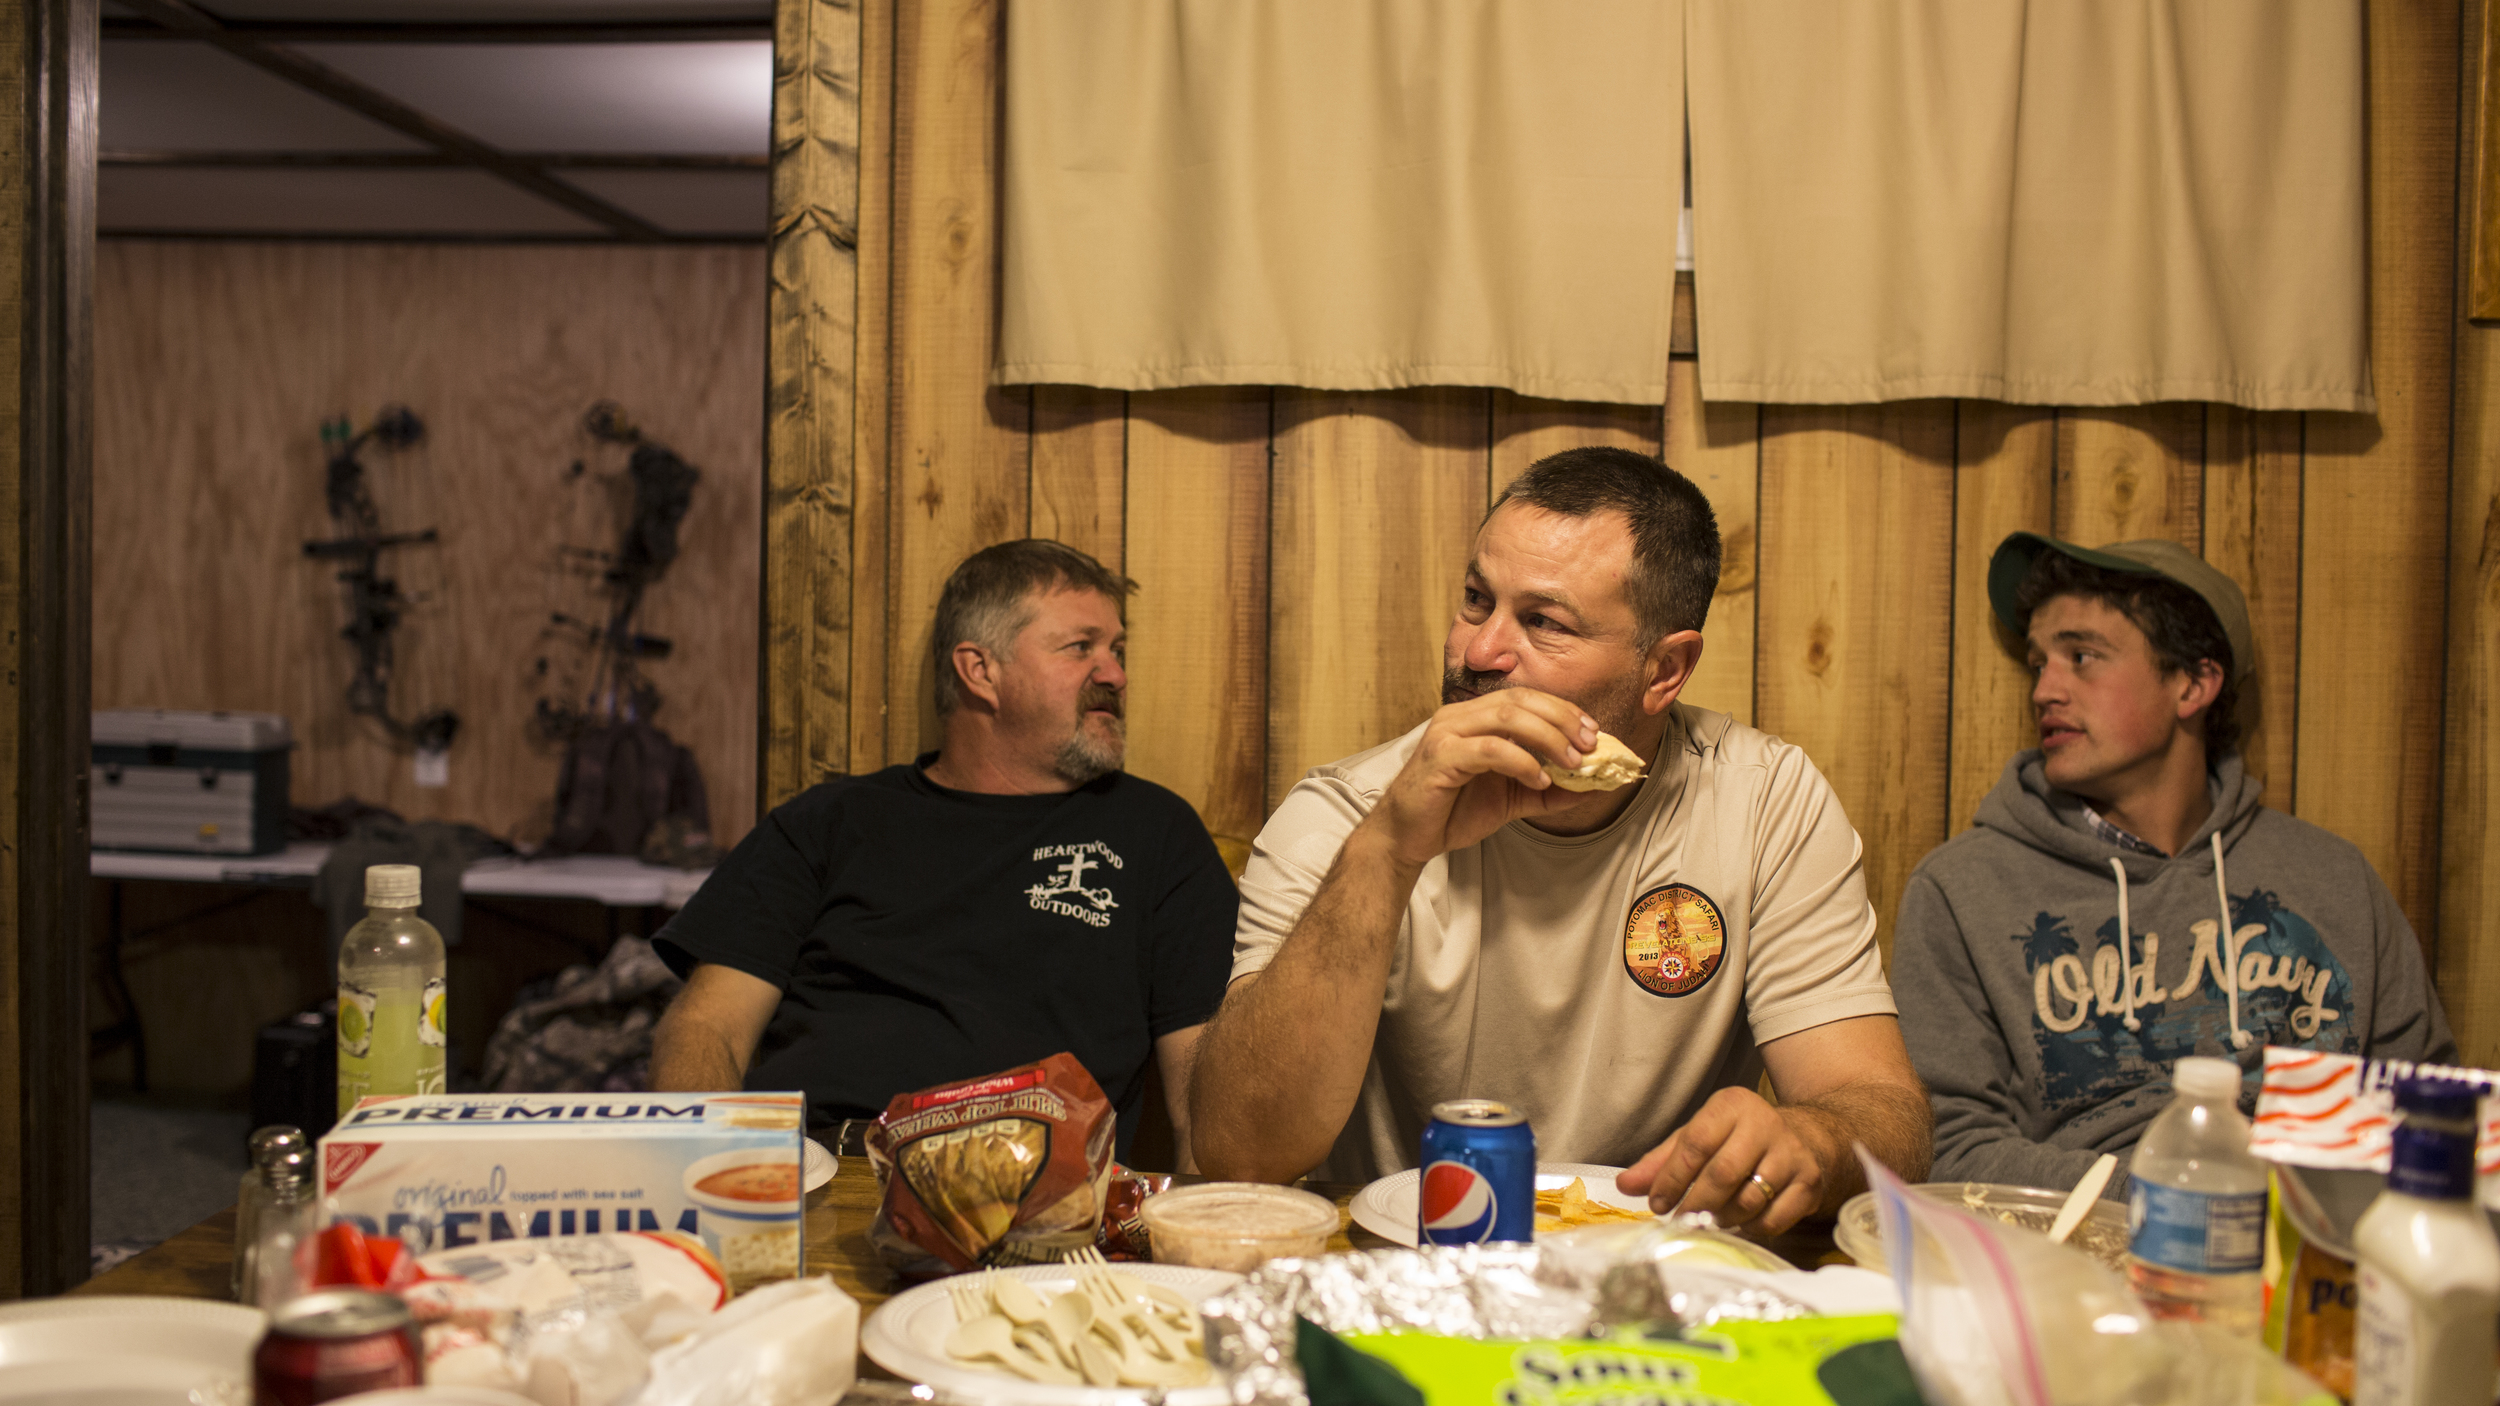 Tracy (L), his older brother Troy (C), and another hunter enjoy a evening meal after a hunt at the Heartwood Outdoors camp near Indian Springs, Maryland.